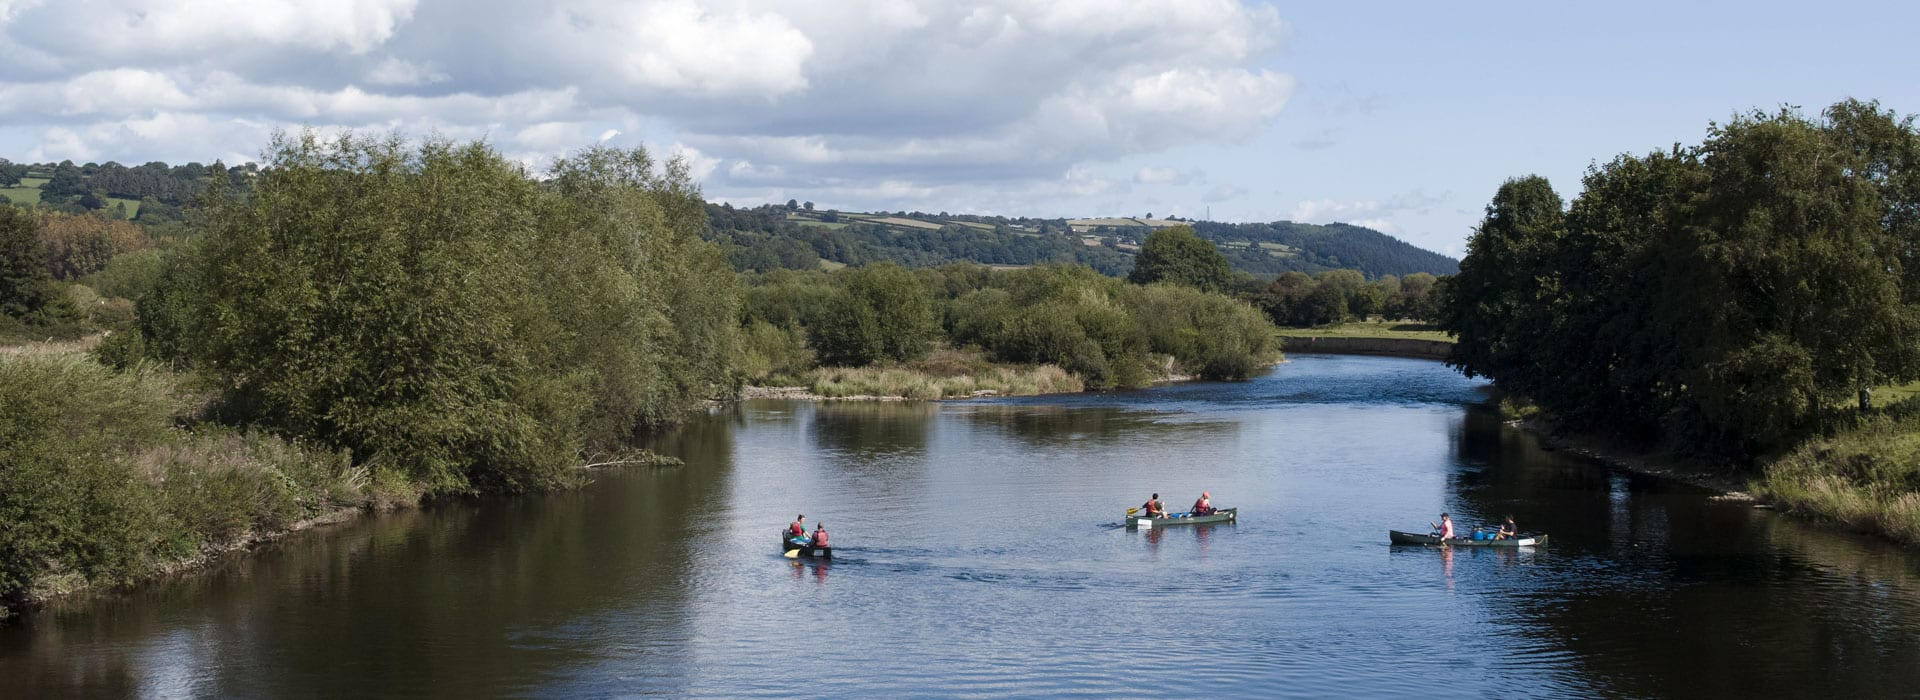 Canoeing Kayaking Stand Up Paddleboarding In Herefordshire